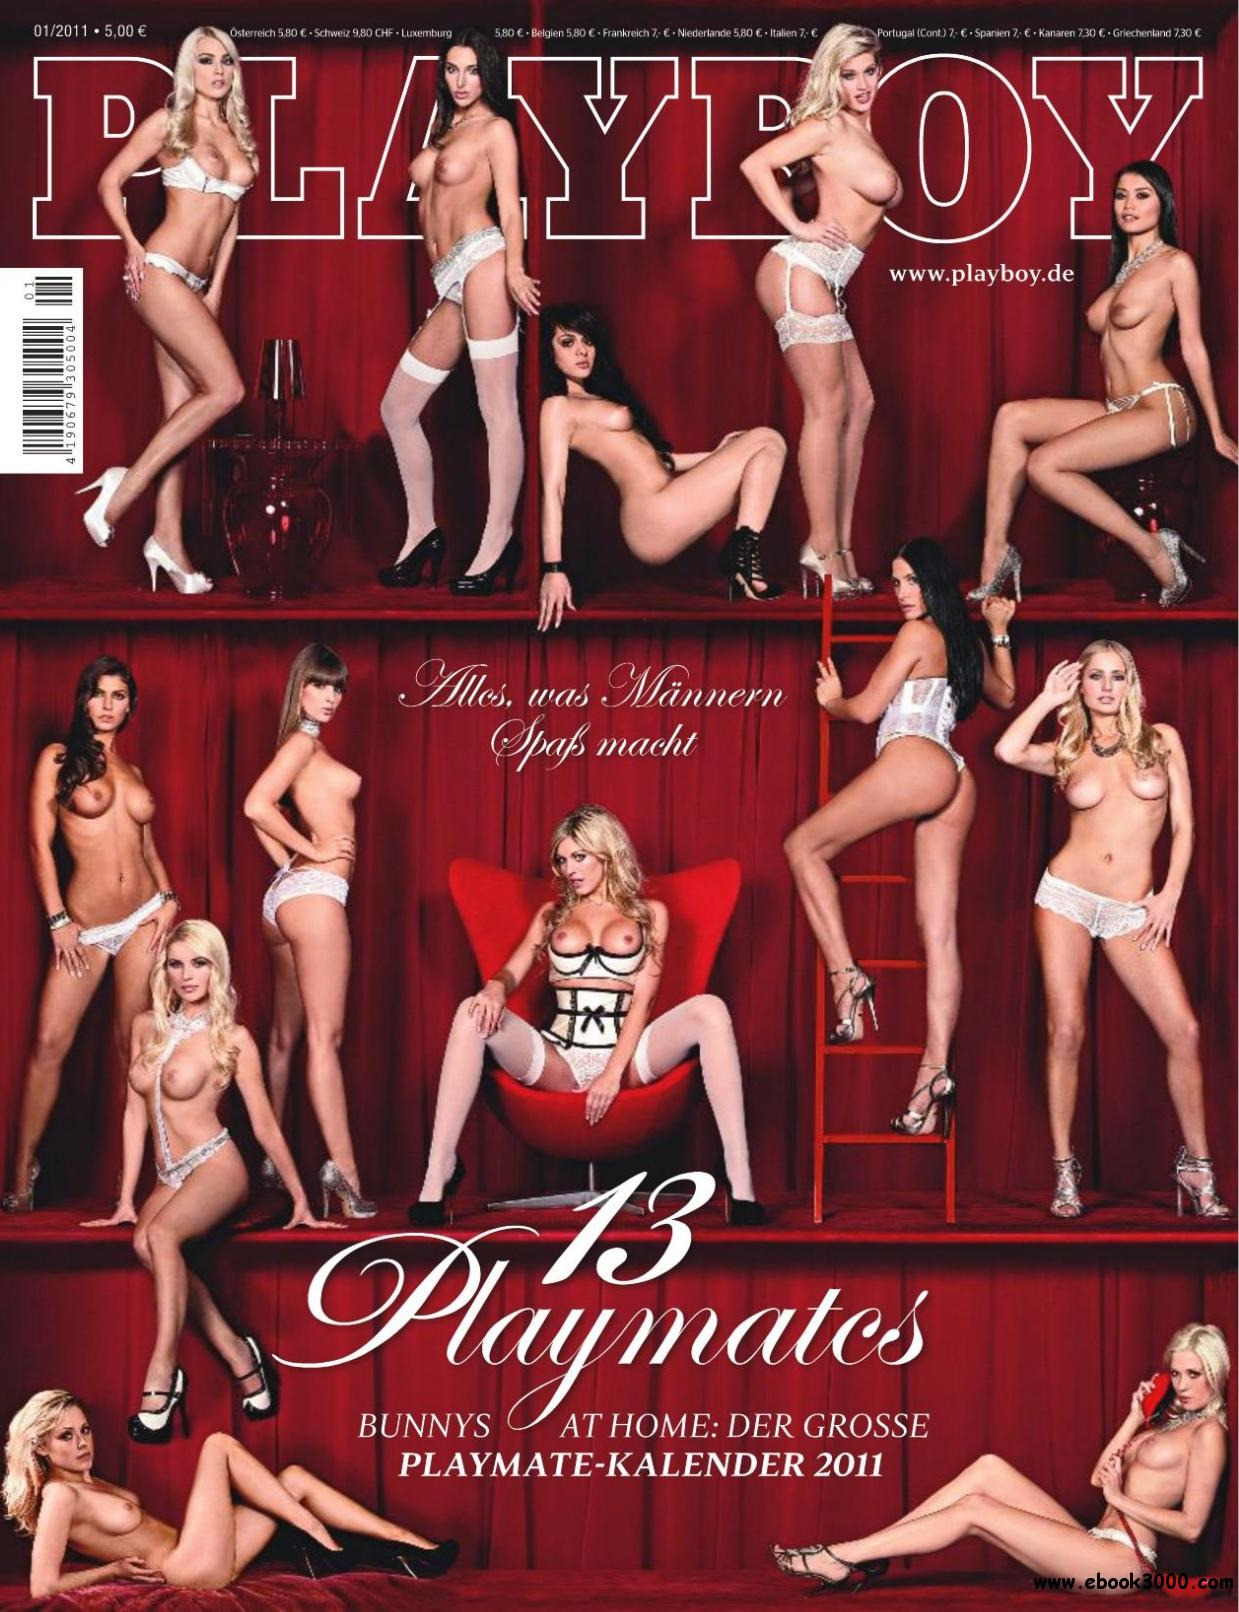 Playboy Germany - January 2011 free download